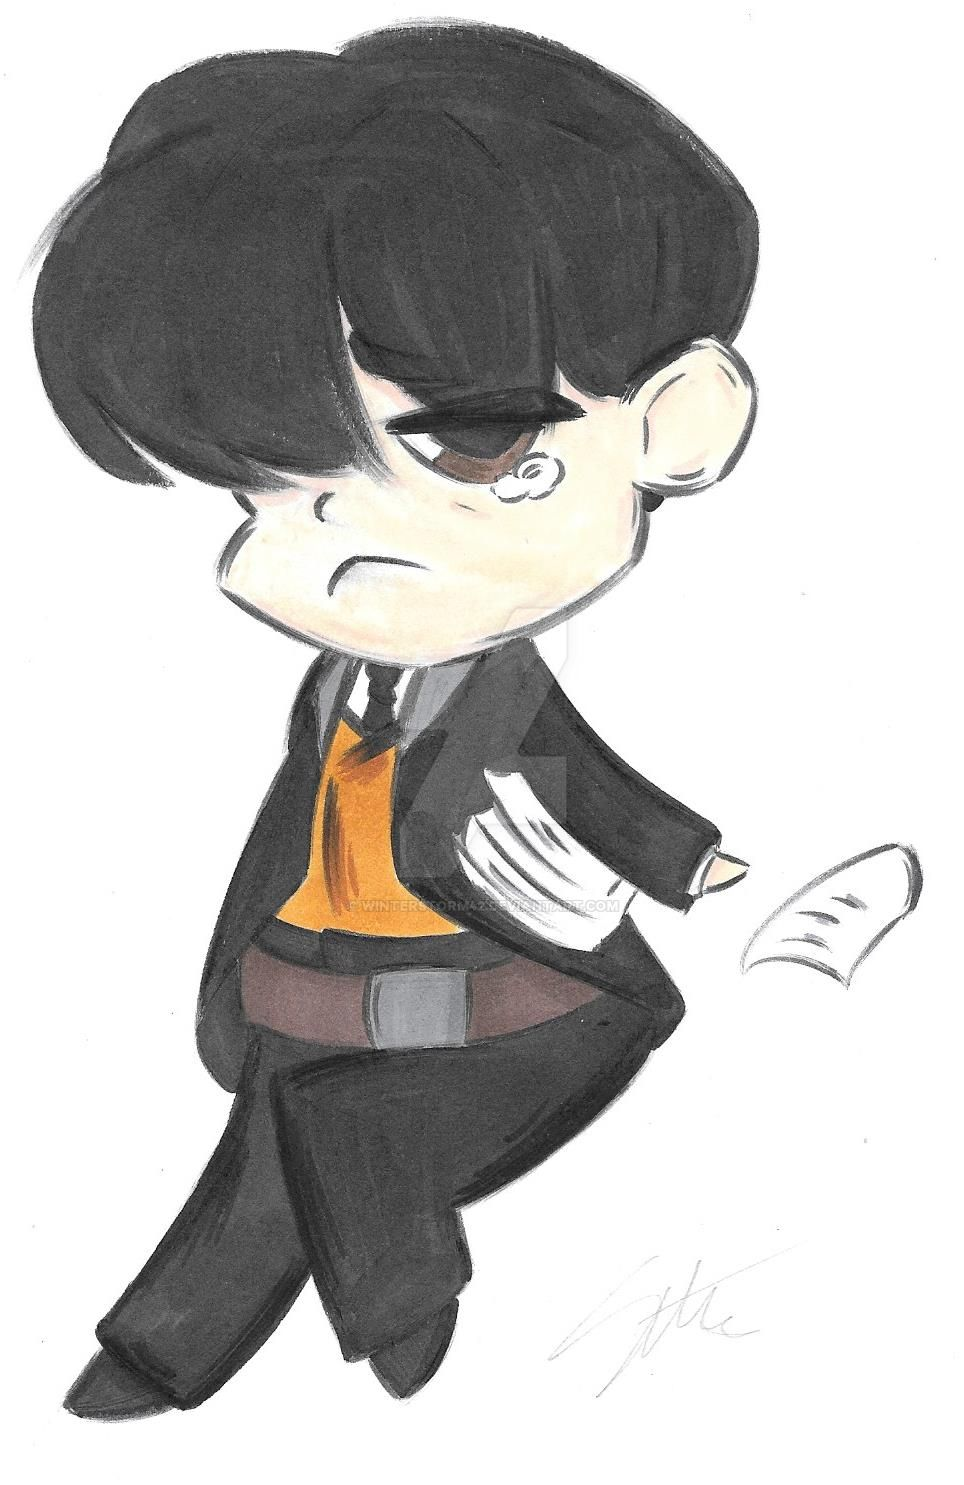 Little Credence by winterStorm42